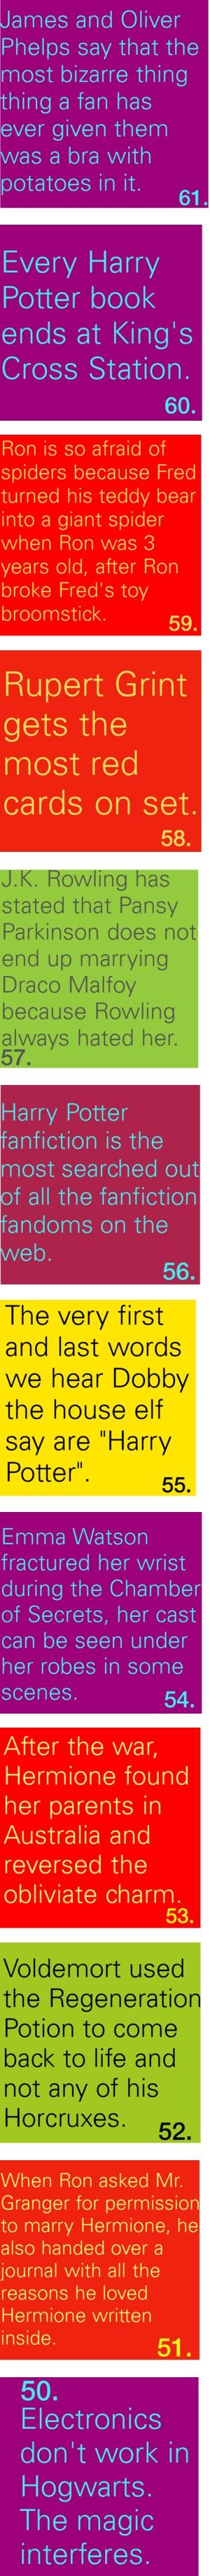 I disagree with 52  Because of the horcruxes, Voldemort was